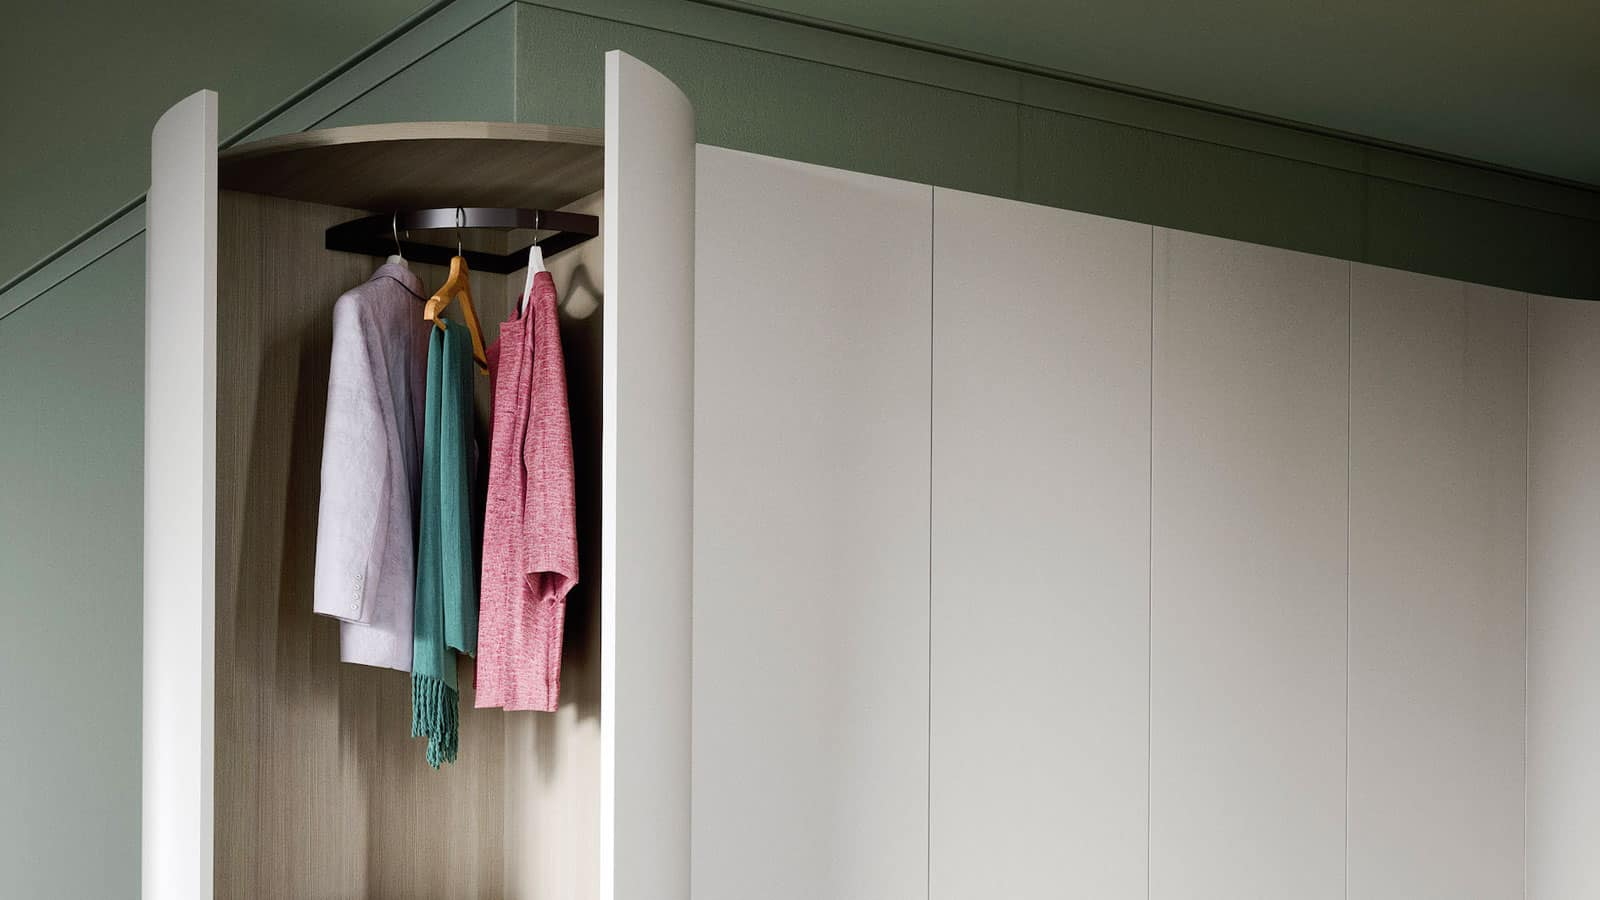 Dressing Angle Sur Mesure armoire d'angle | fabrication européenne | optimal annecy